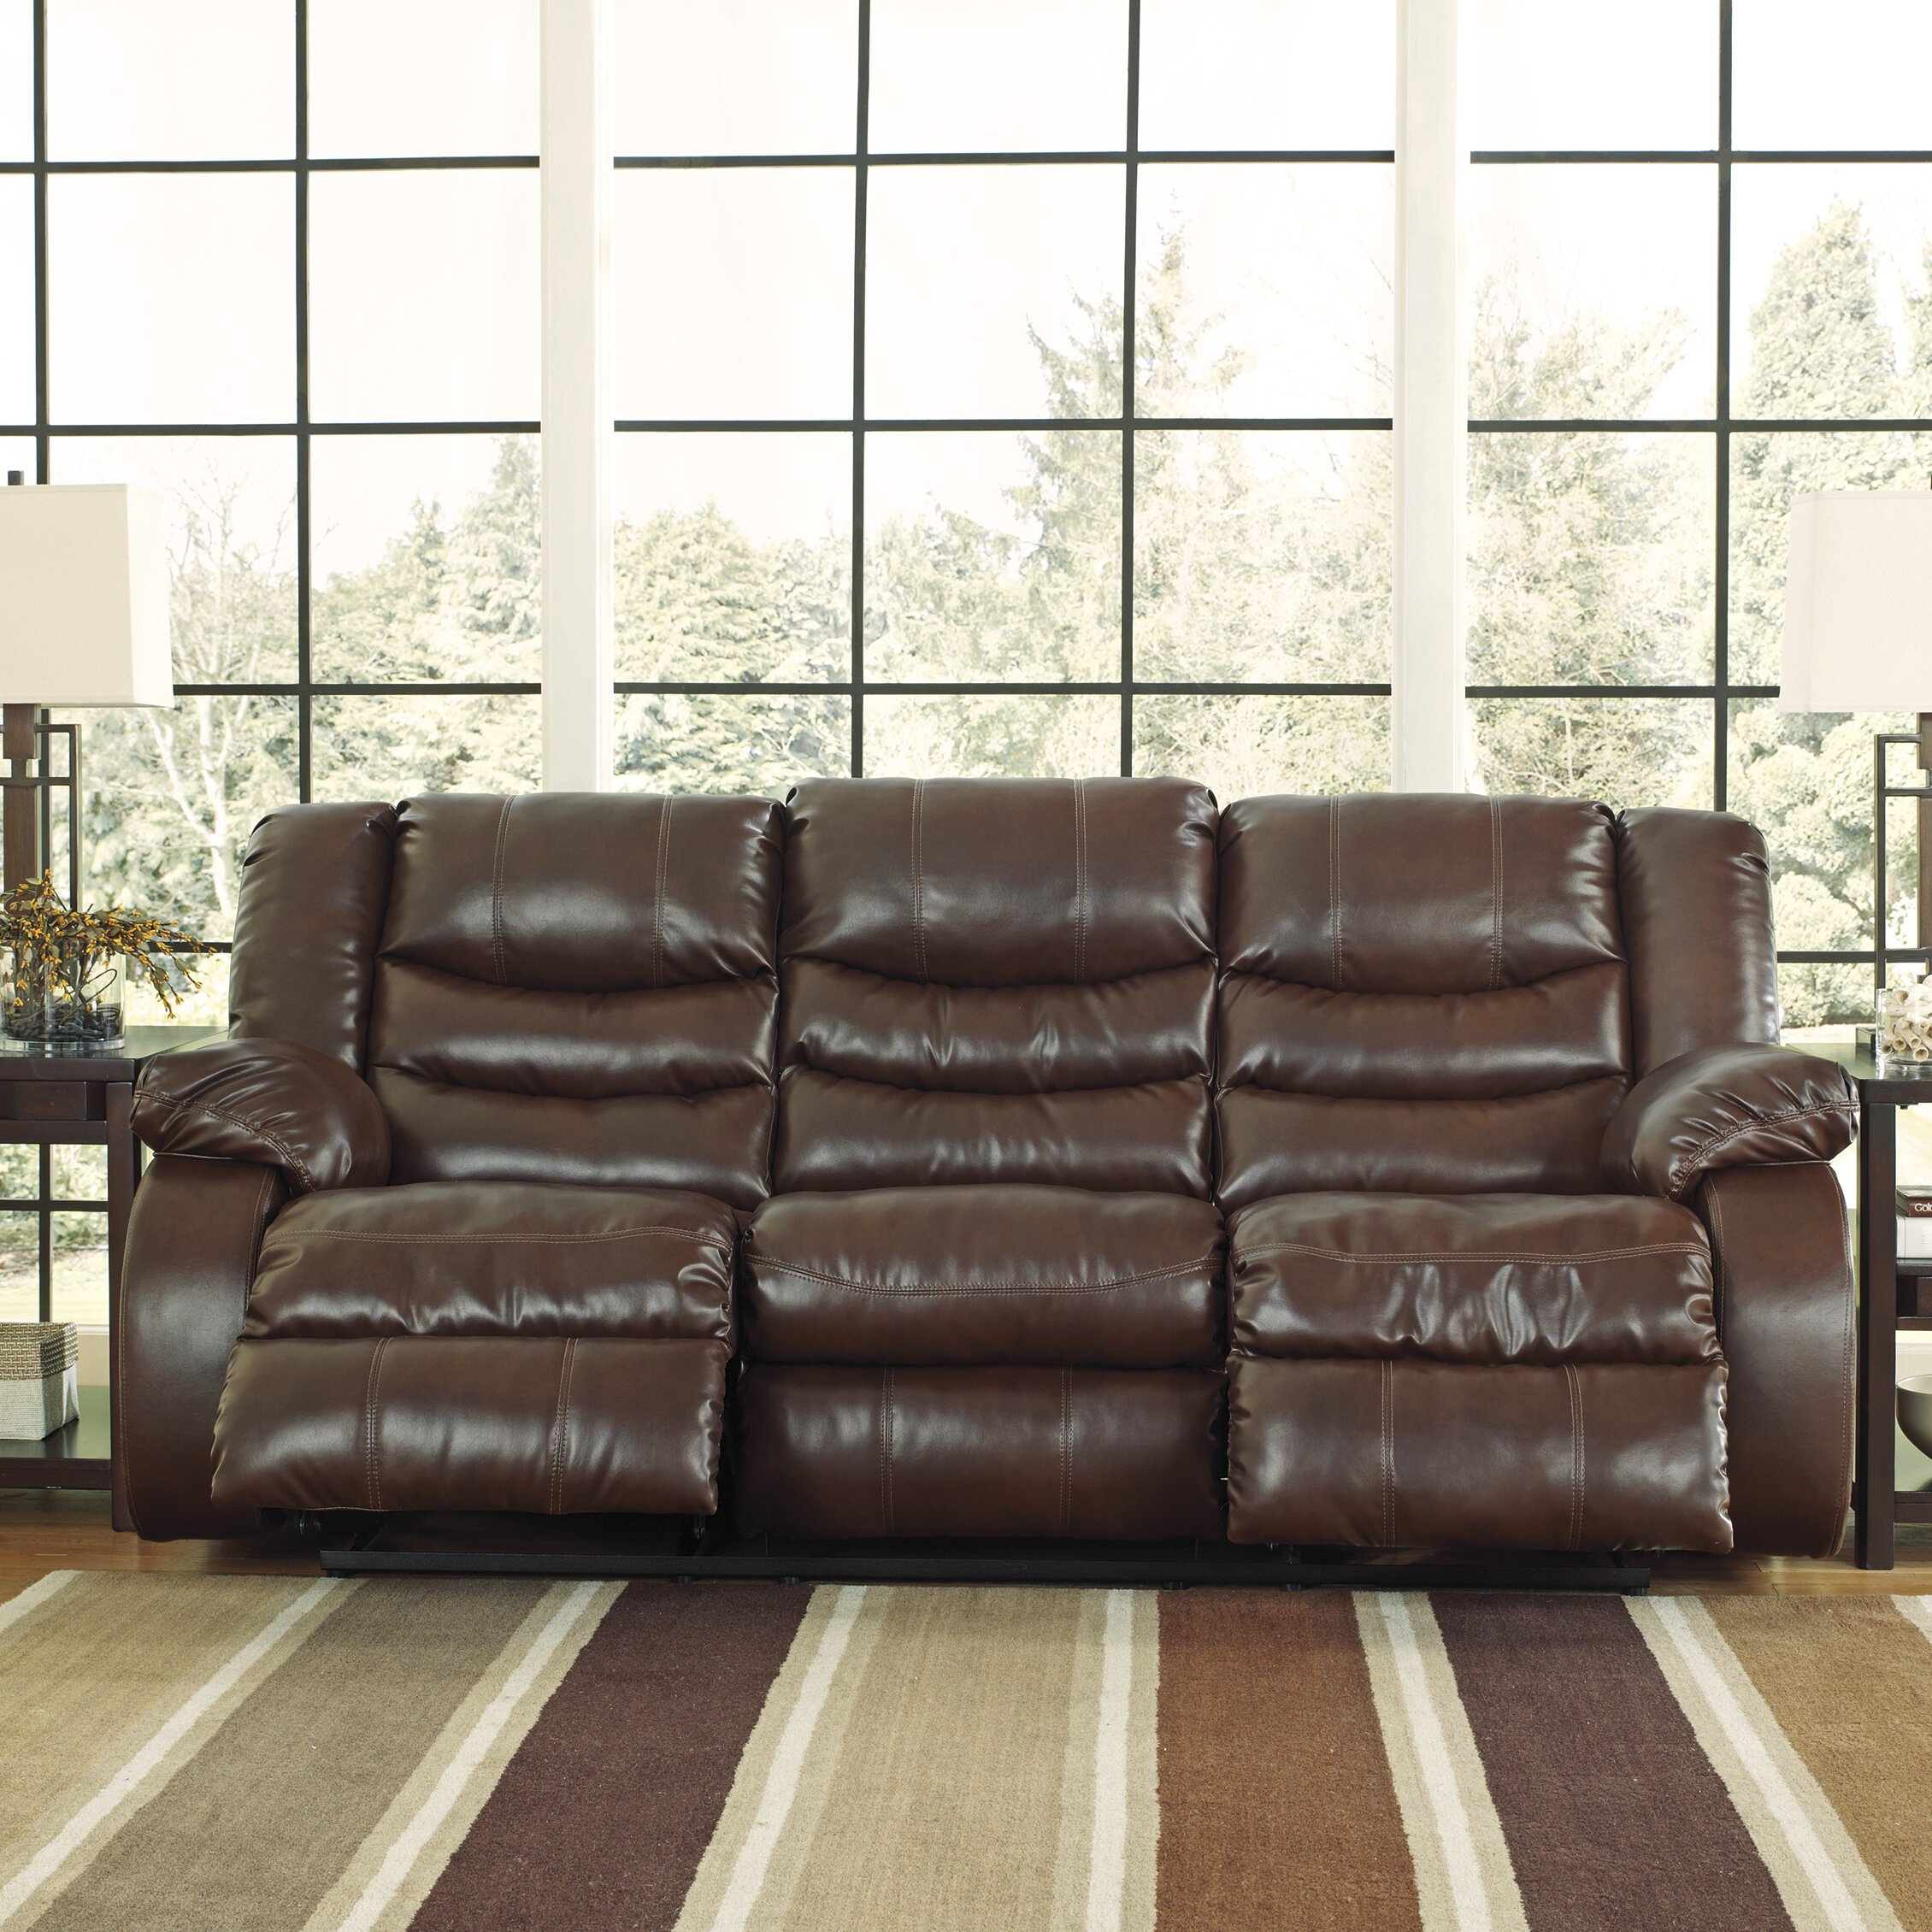 Darby Home Co Summey Reclining Sofa amp Reviews Wayfair : YardleyRecliningSofa from www.wayfair.com size 2260 x 2260 jpeg 1151kB